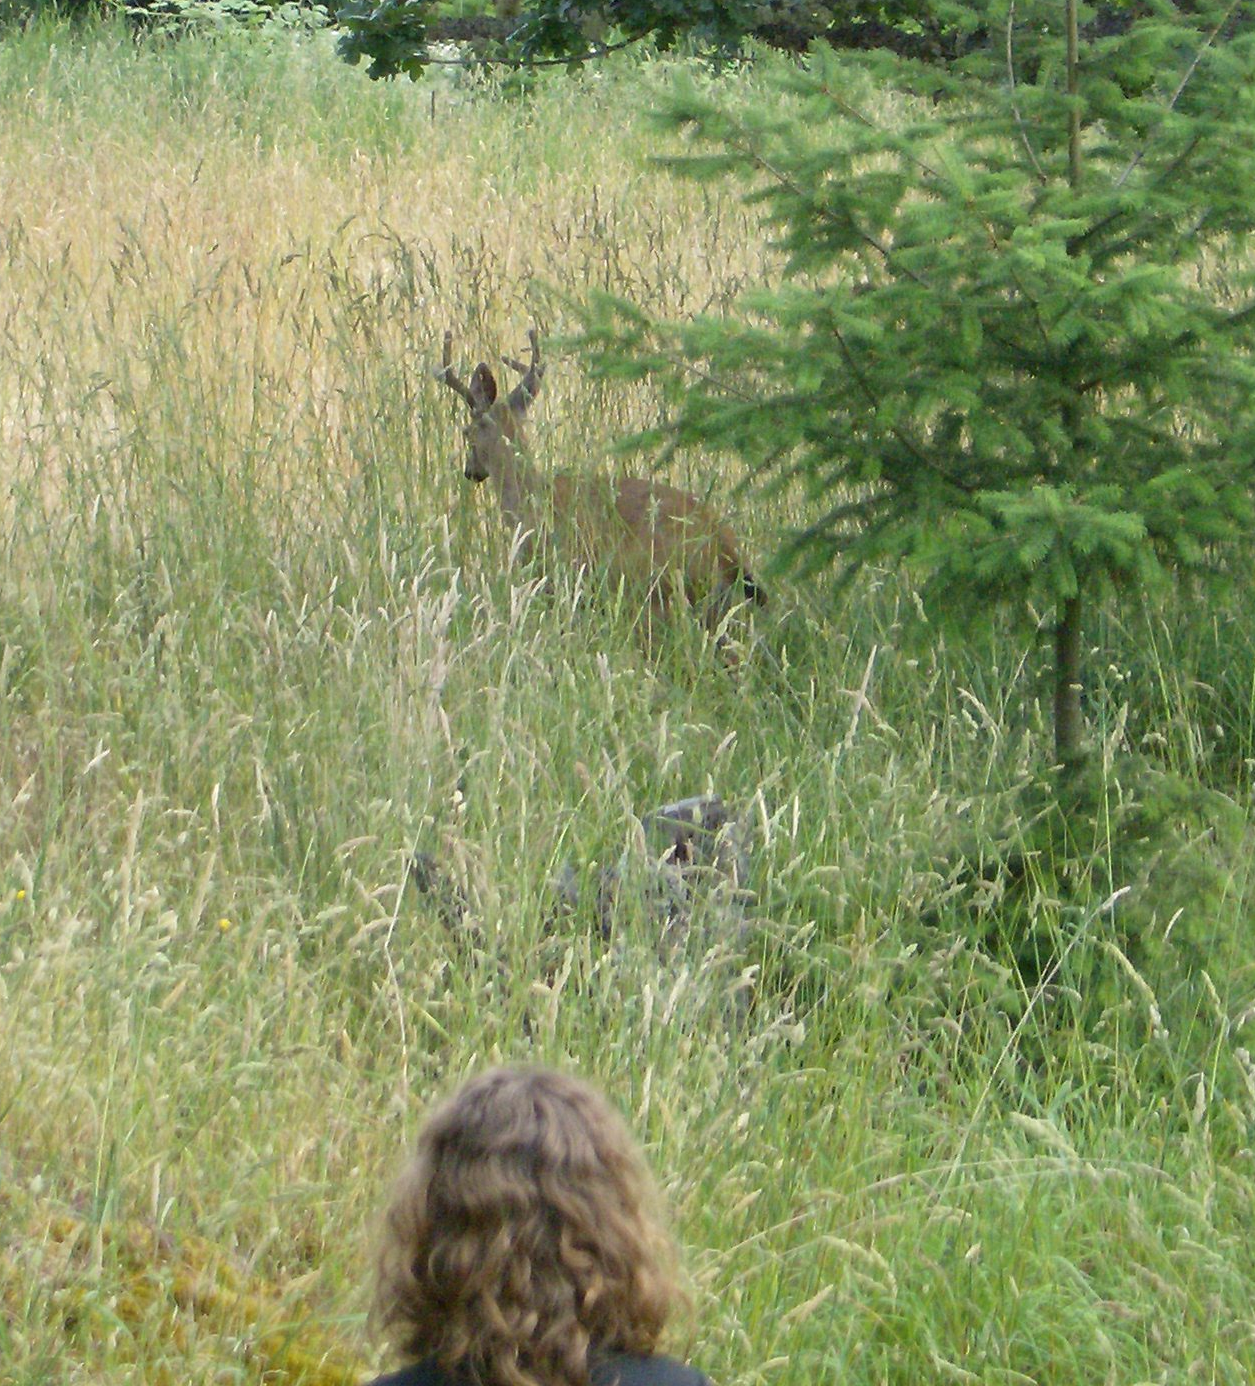 a three point buck in jills back yard with stidkid not 20 ft away